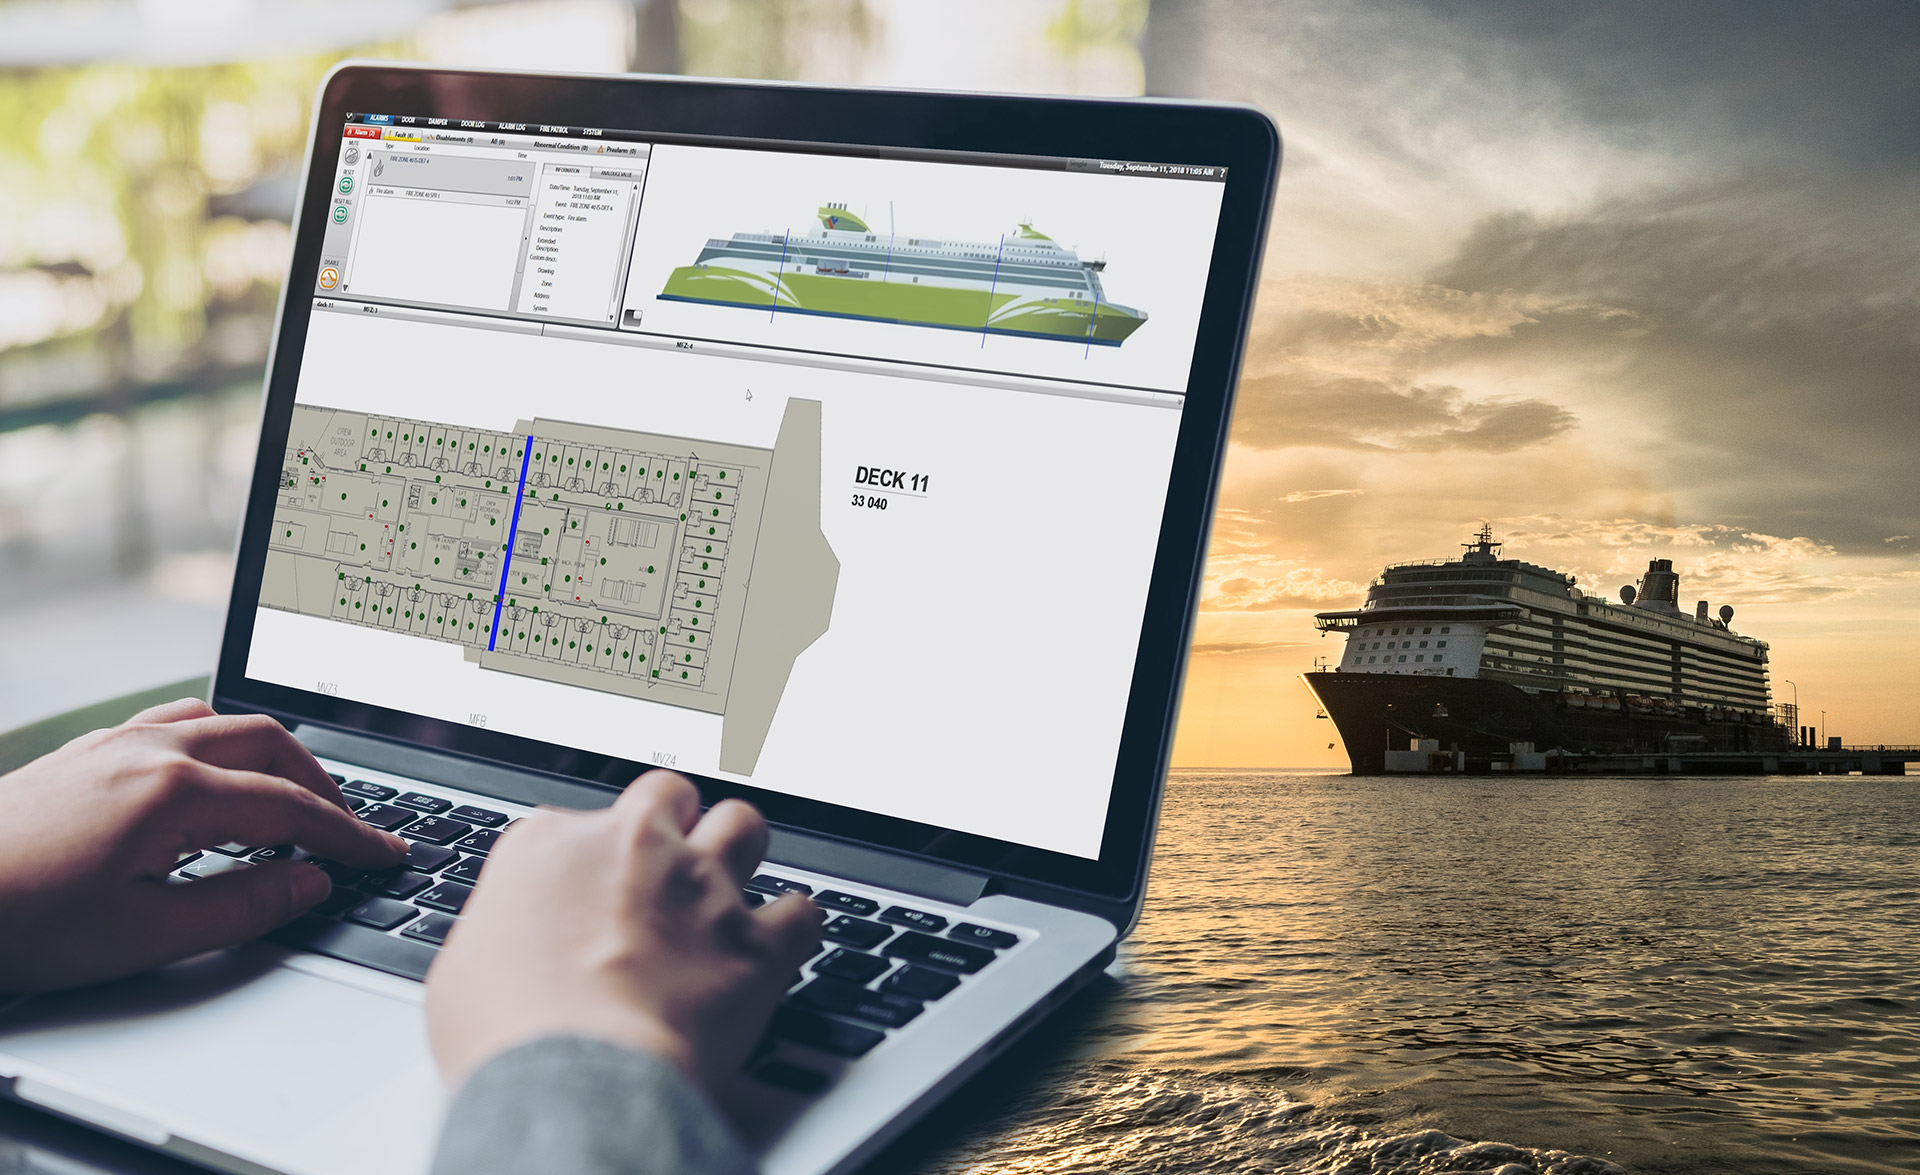 Sharing data between sea and land can save time and money. But how do you secure that valuable insights and secret information won't end up in the wrong hands?